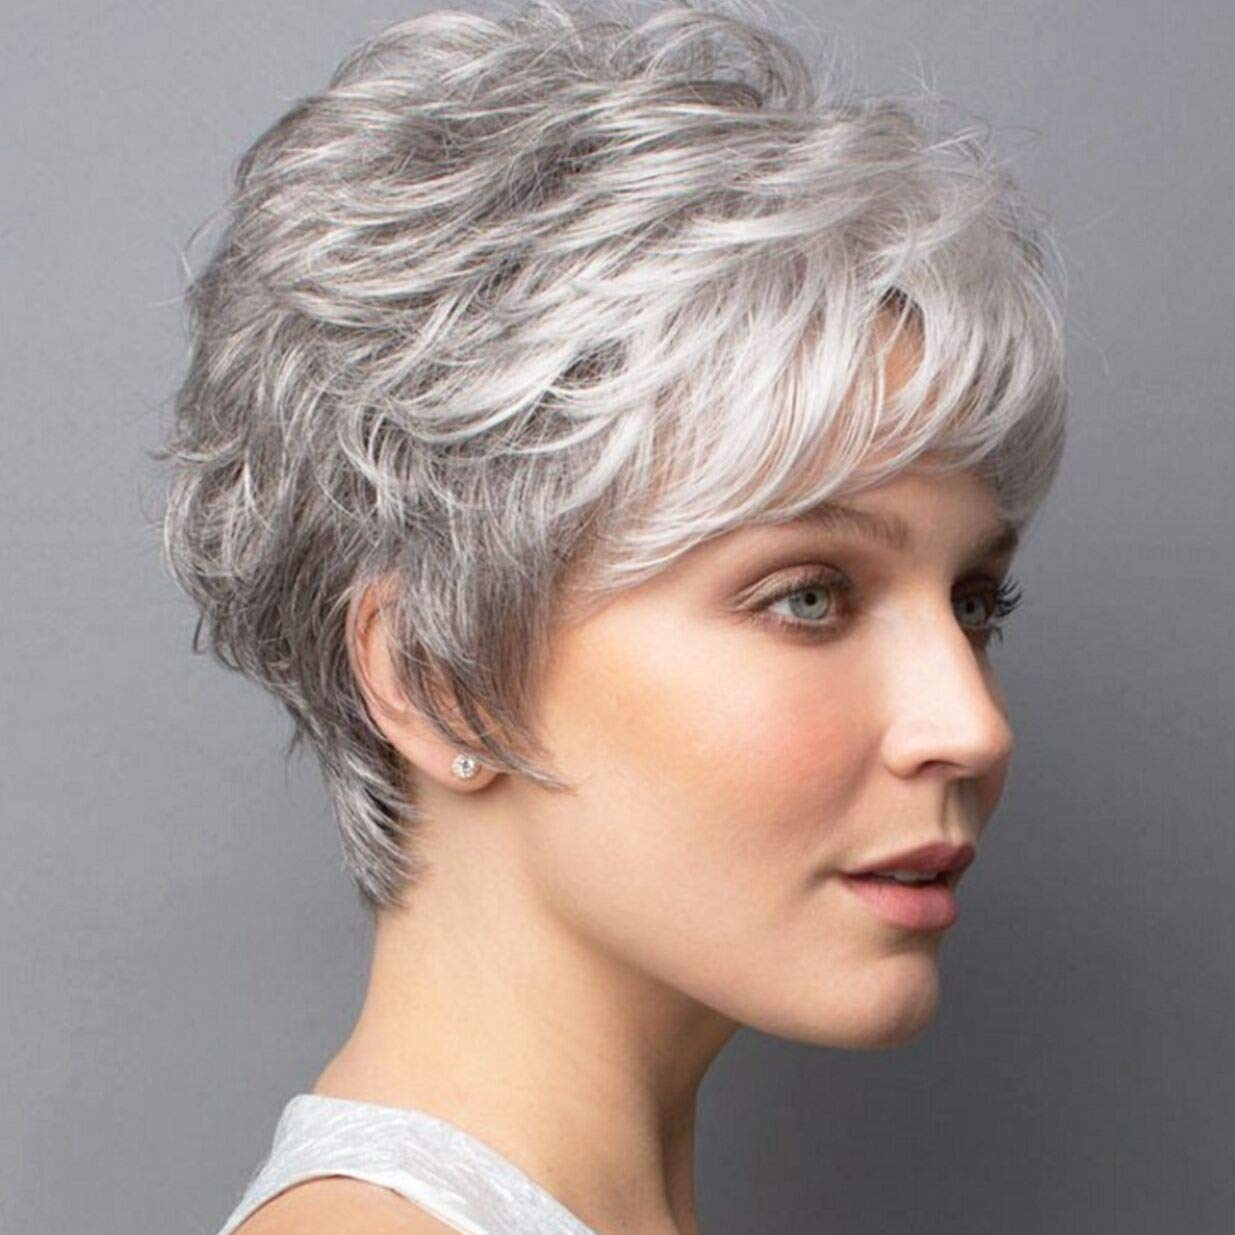 Amazon Com Elim Gray Wigs For White Women Short Curly Female Wig Full Synthetic Hair Womens Wigs With Wig Cap Z140 Beauty